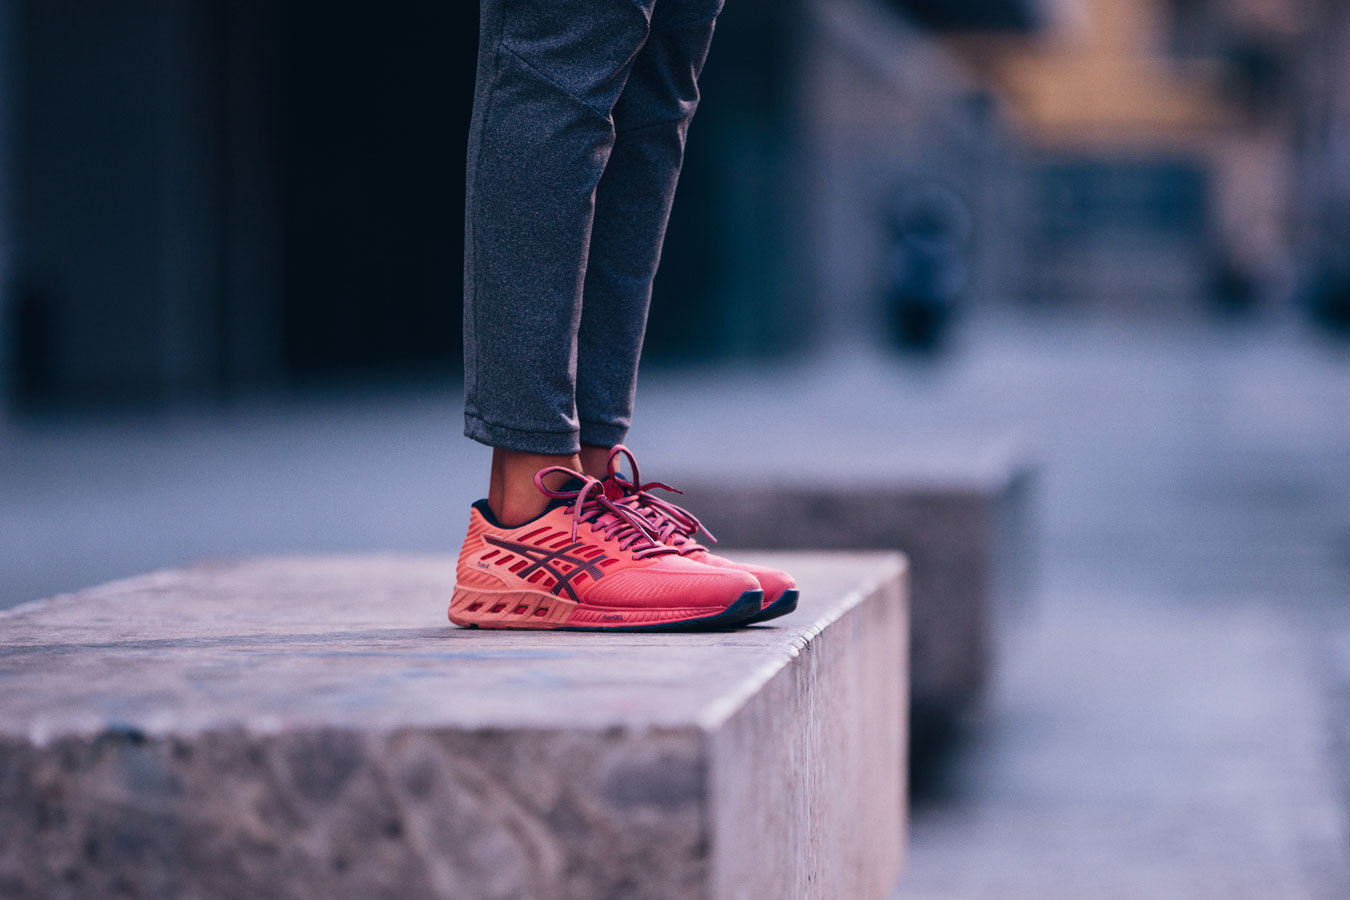 Asics AW16 by Paul Calver c/o MAKING PICTURES